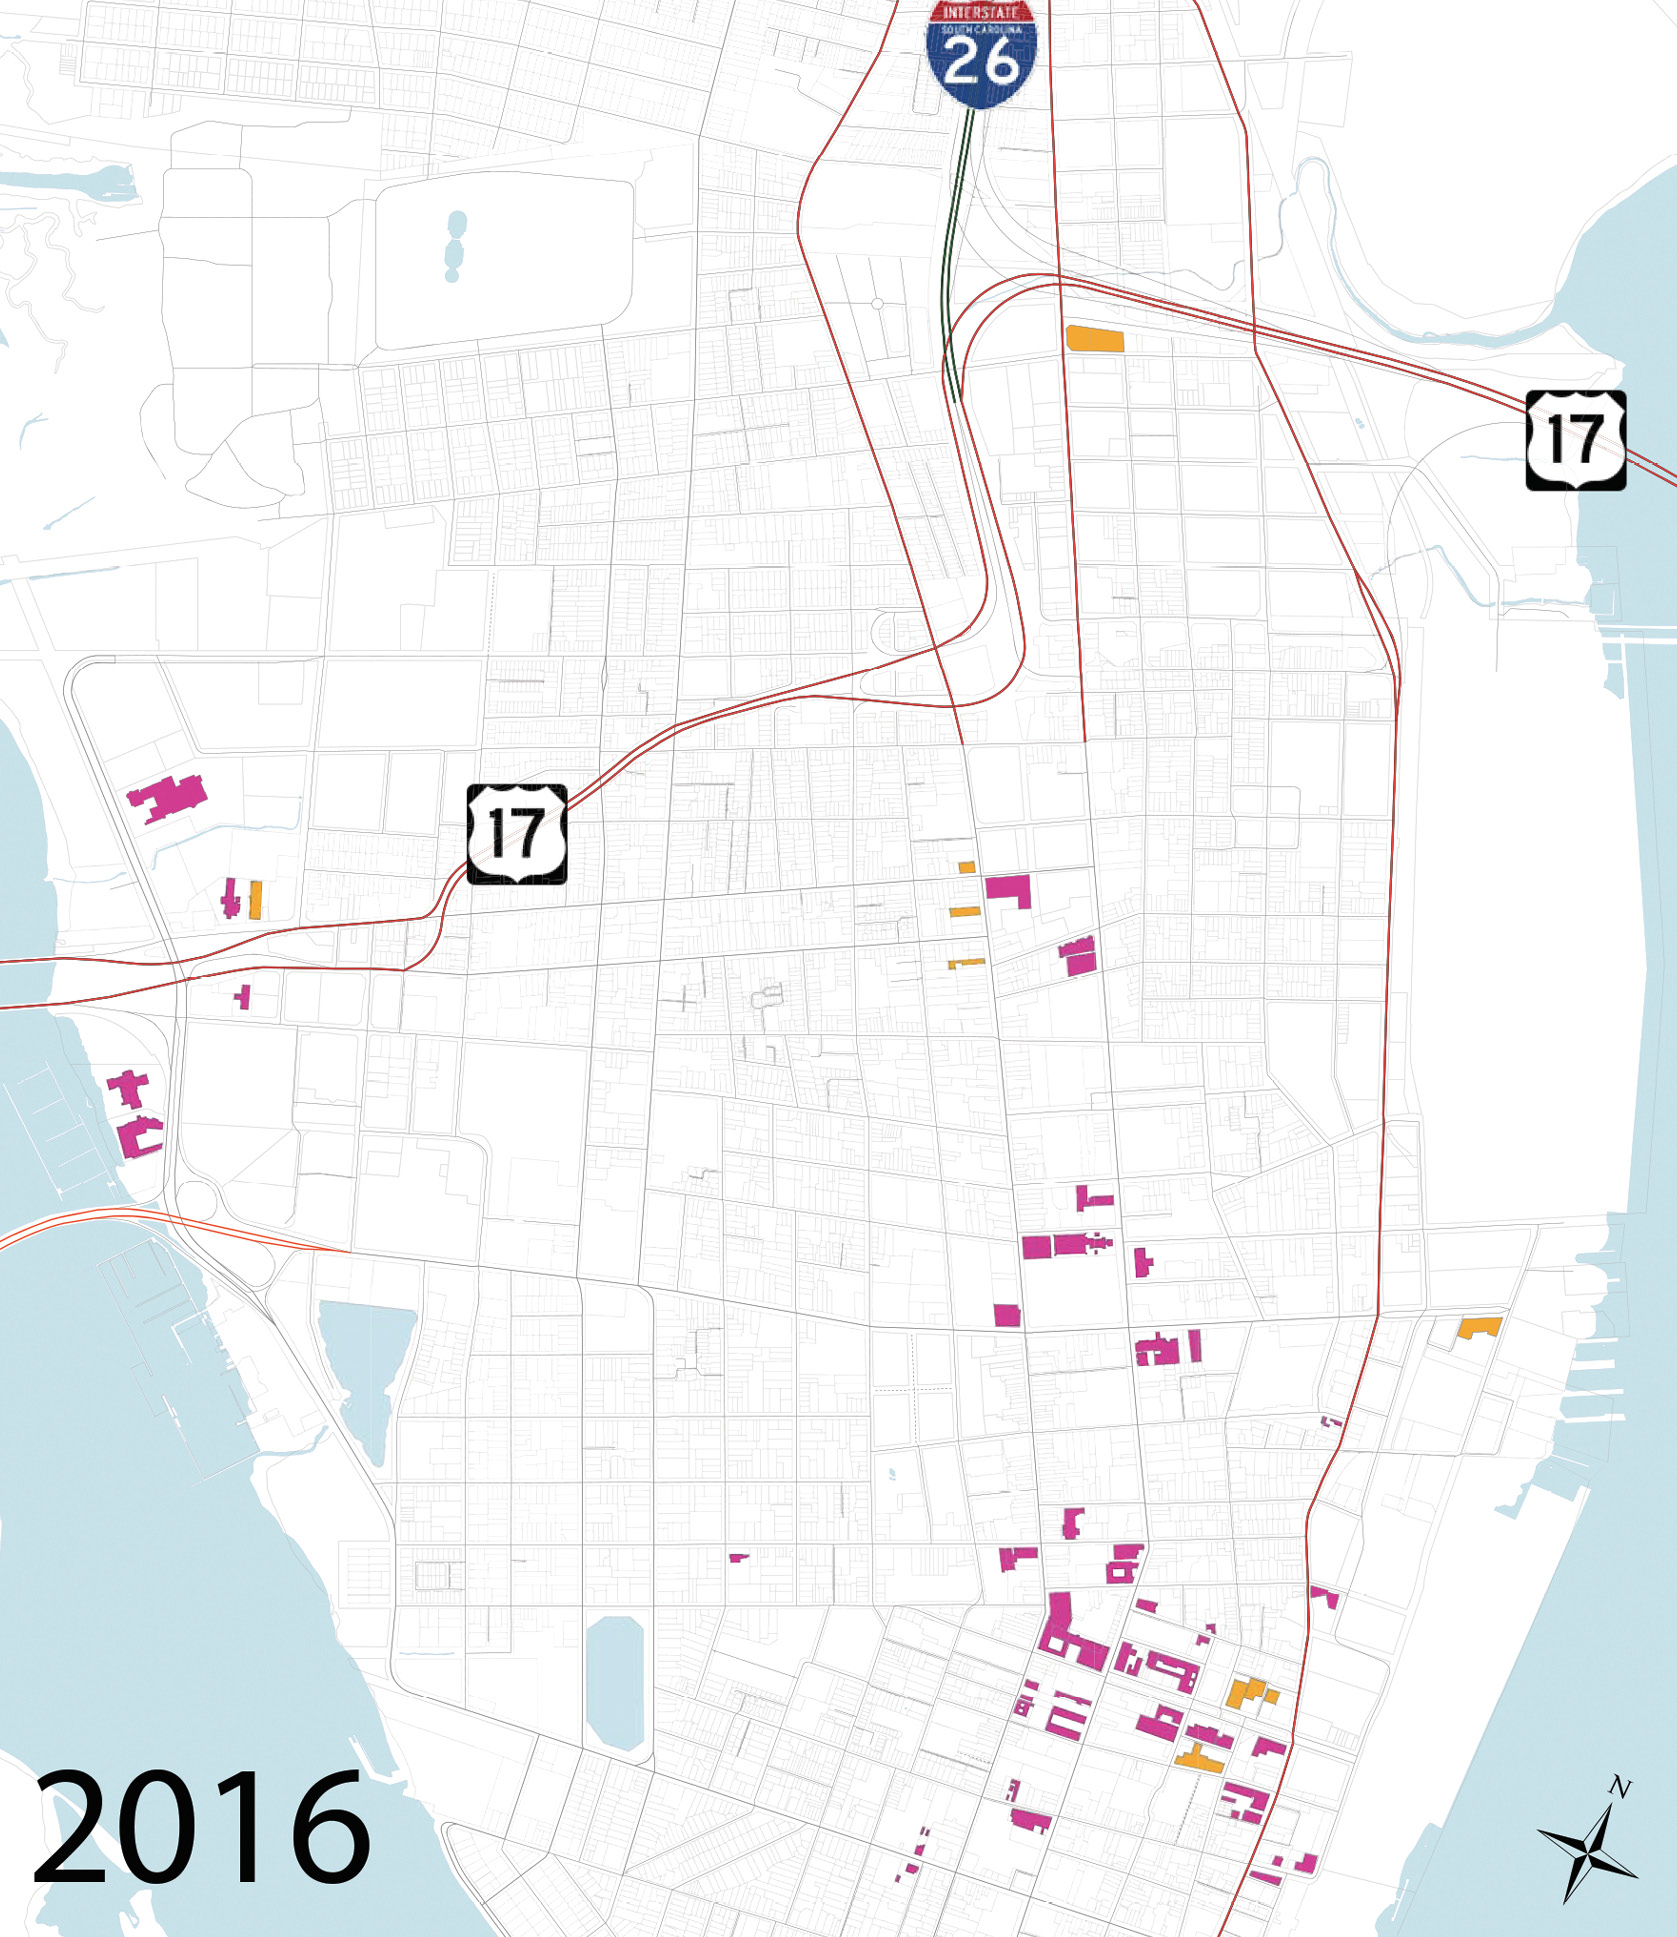 "This map from the Peninsula Hotel Study, prepared by the City of Charleston's department of Planning, Preservation, and Sustainability and division of Business and Neighborhood Services in June 2016, shows all existing hotels and those under construction in magenta and 11 recently approved in orange. Upon completion, the peninsula will have nearly 6,000 guest accommodations. To read the full report, visit <a href=""http://www.charleston-sc.gov/DocumentCenter/View/11618"">www.charleston-sc.gov/DocumentCenter/View/11618</a>."